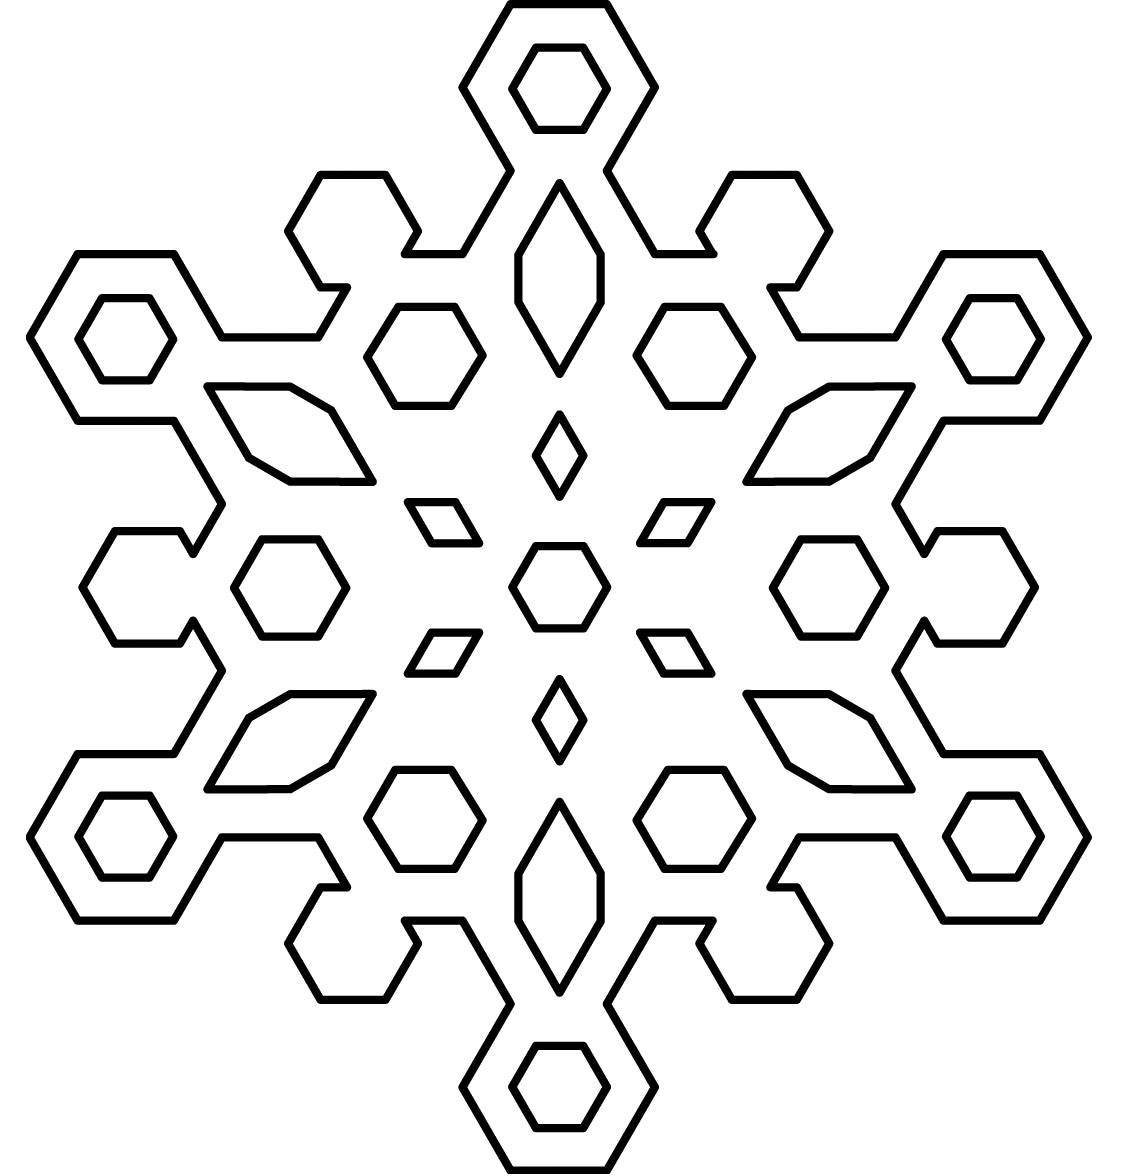 snowflake coloring page to print,printable,coloring pages